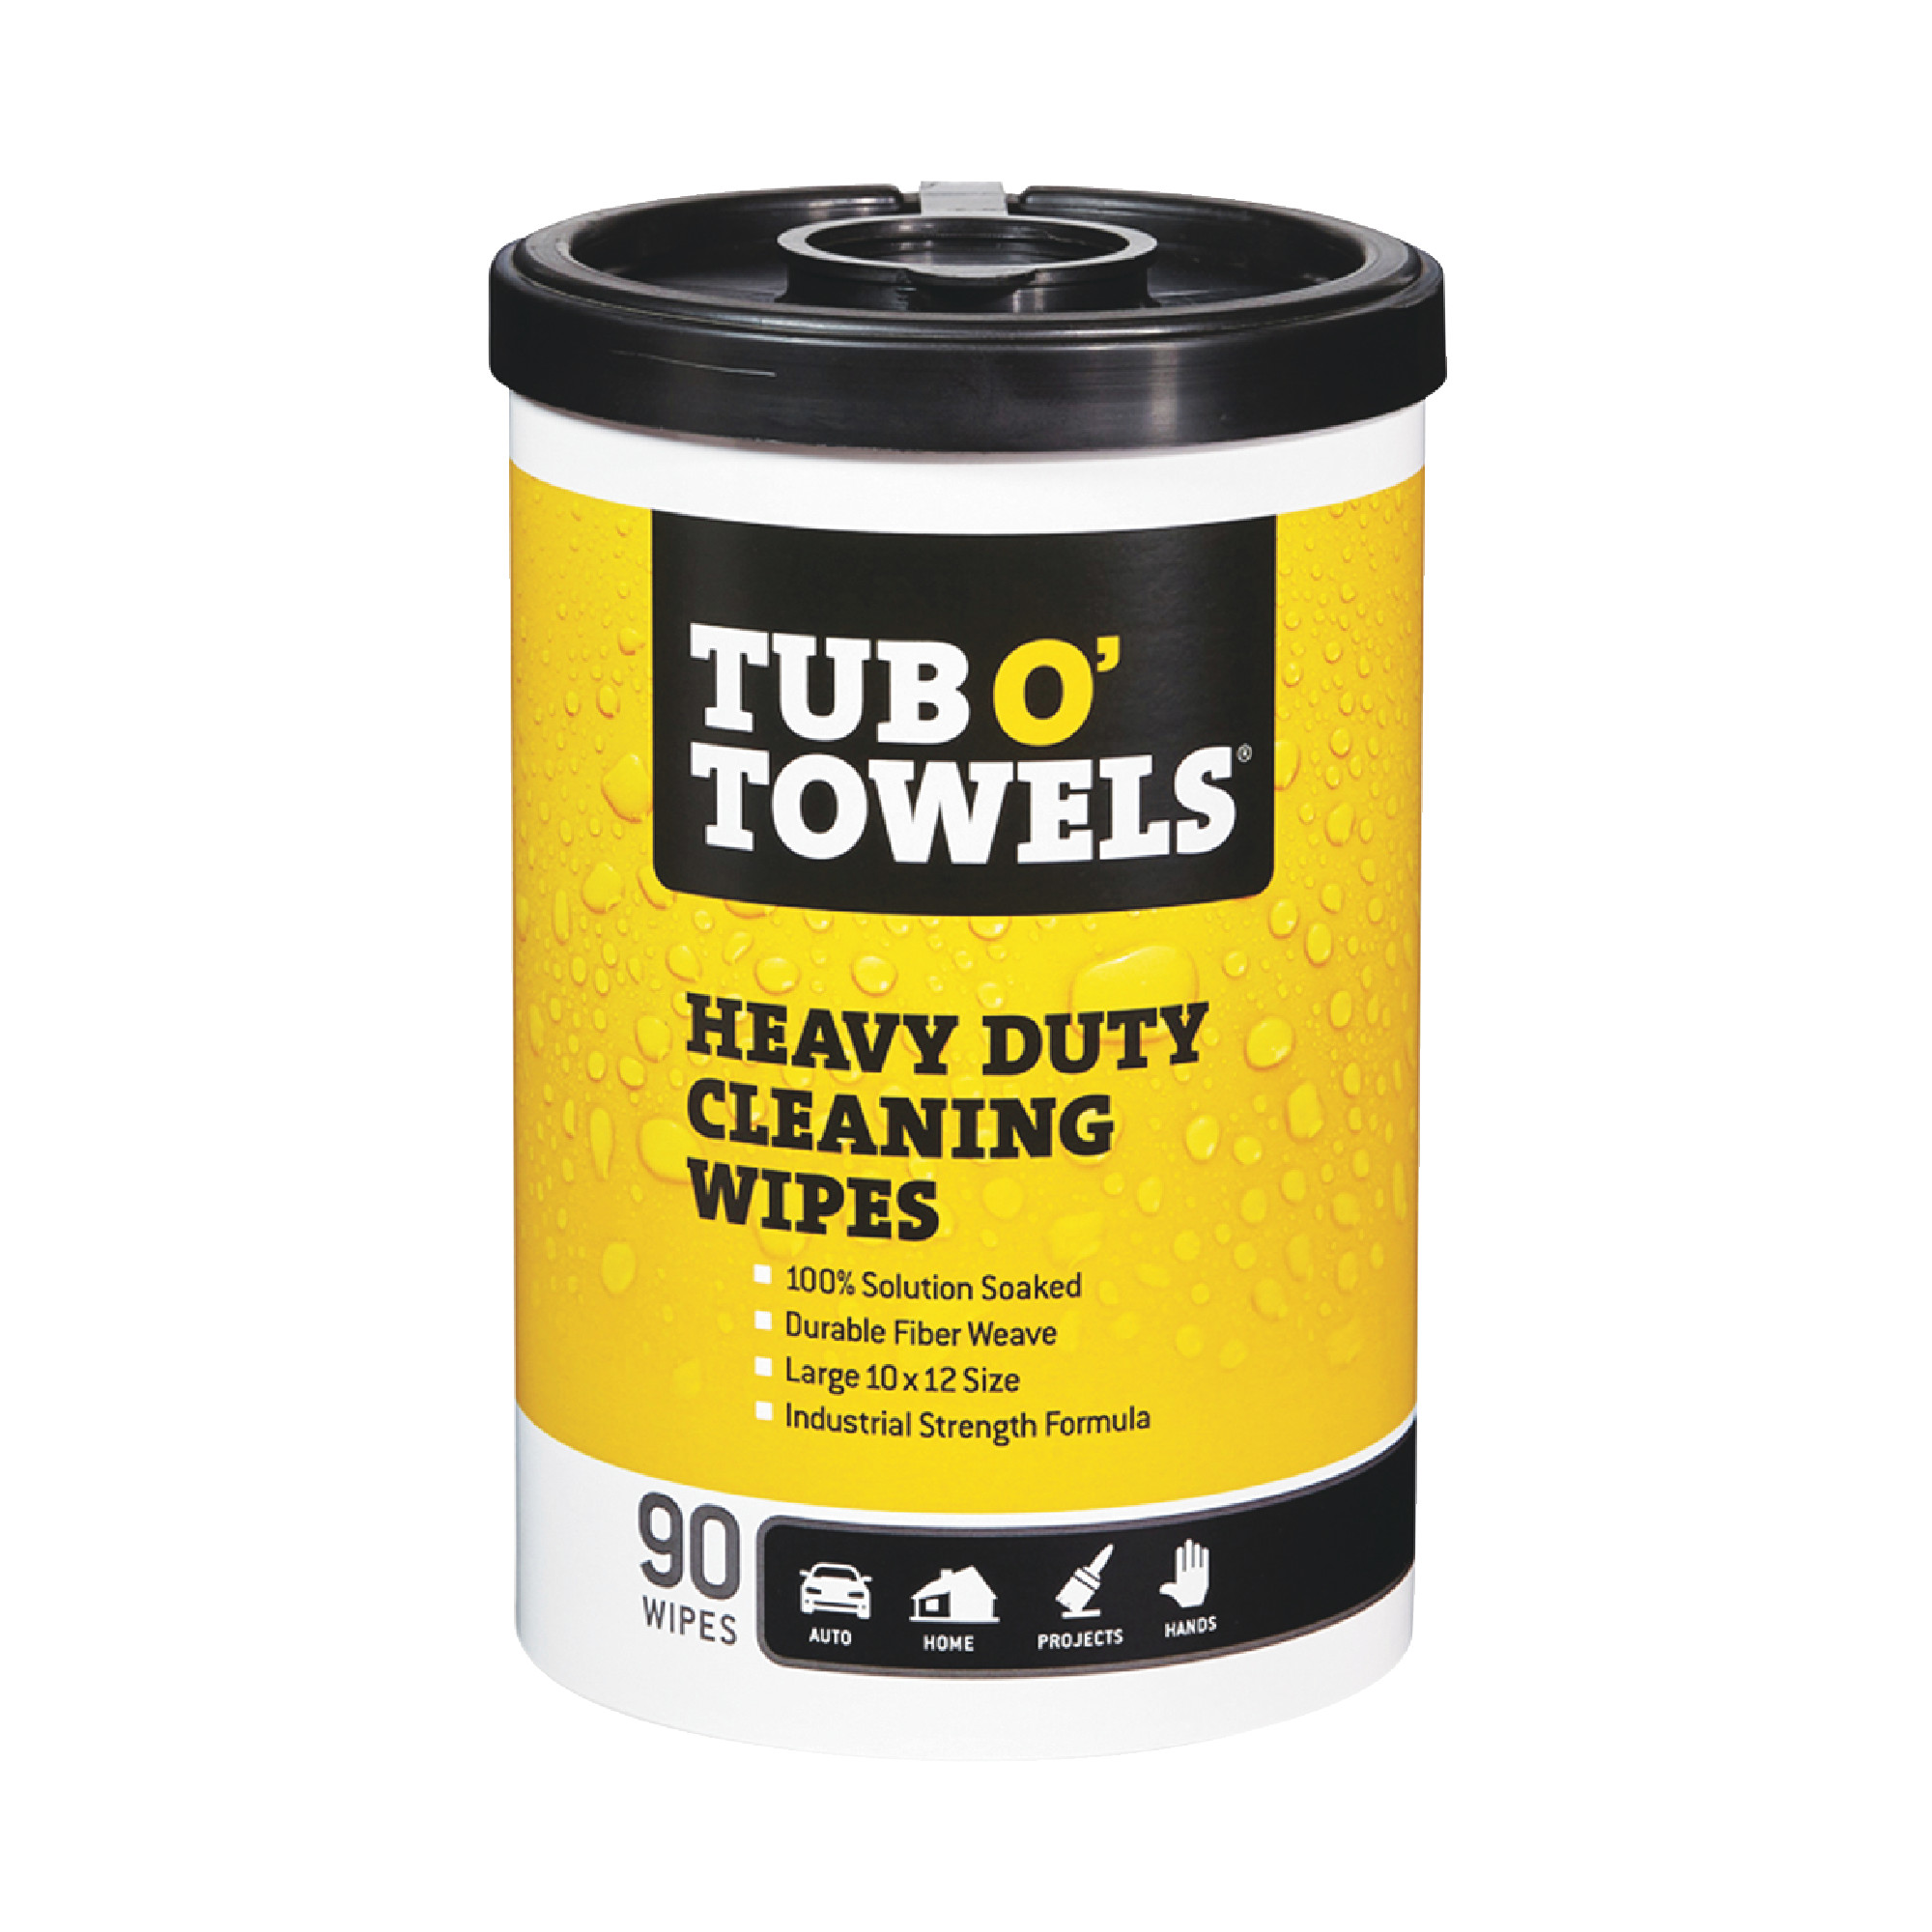 Heavy Duty Cleansing Wipes